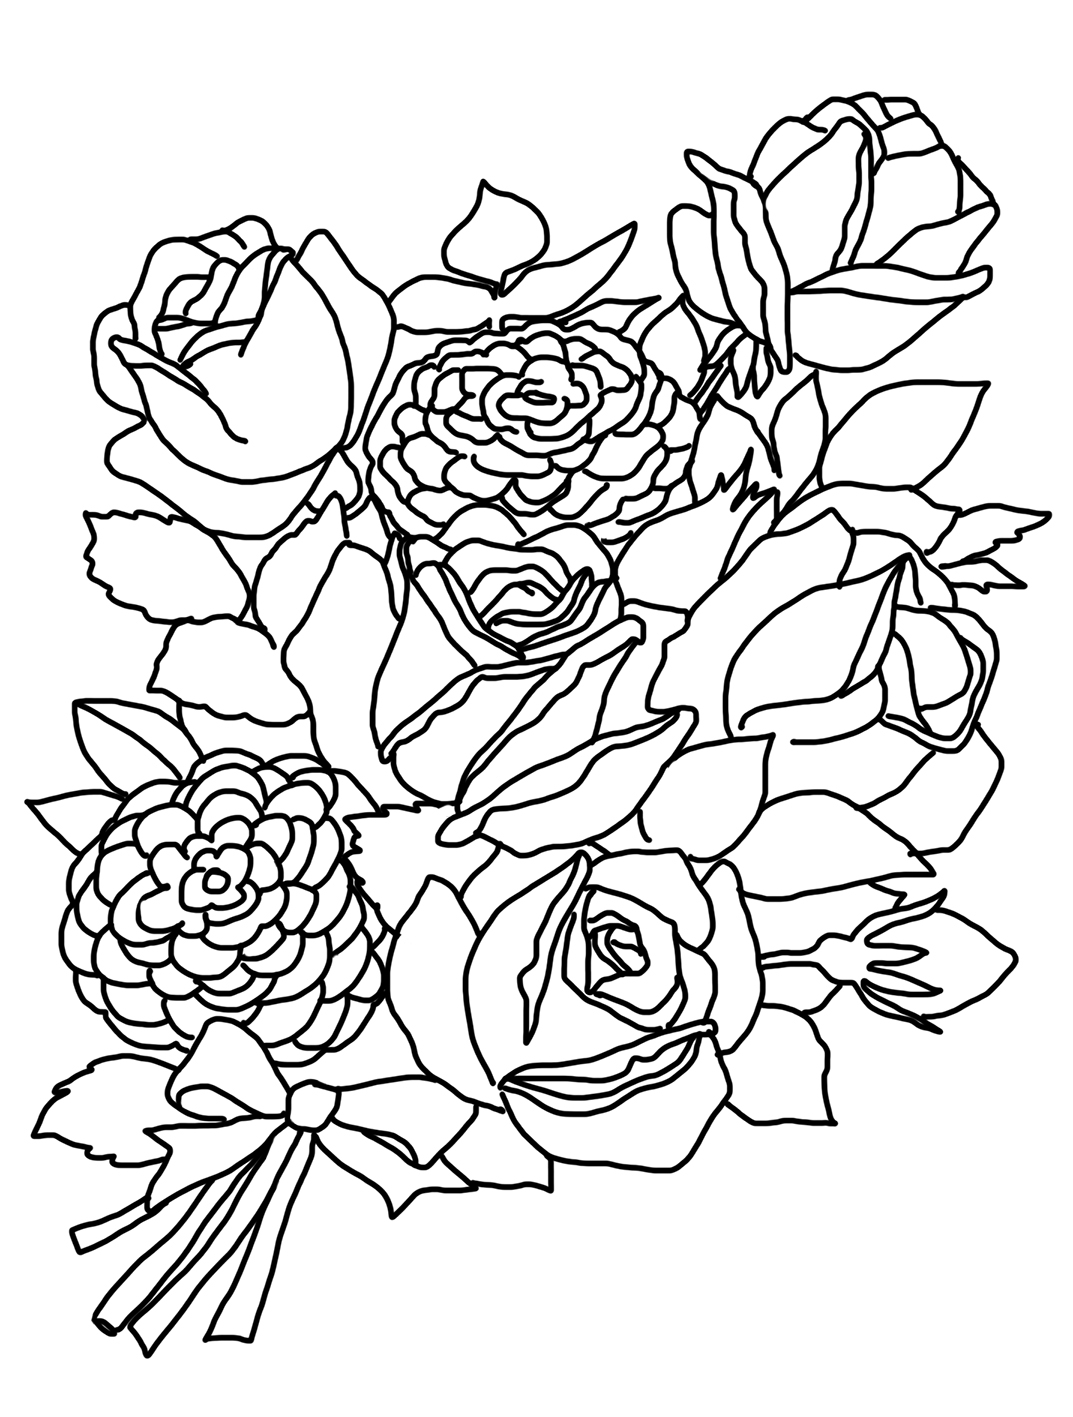 rose colouring pages roses flower coloring pages flower coloring pages free colouring pages rose